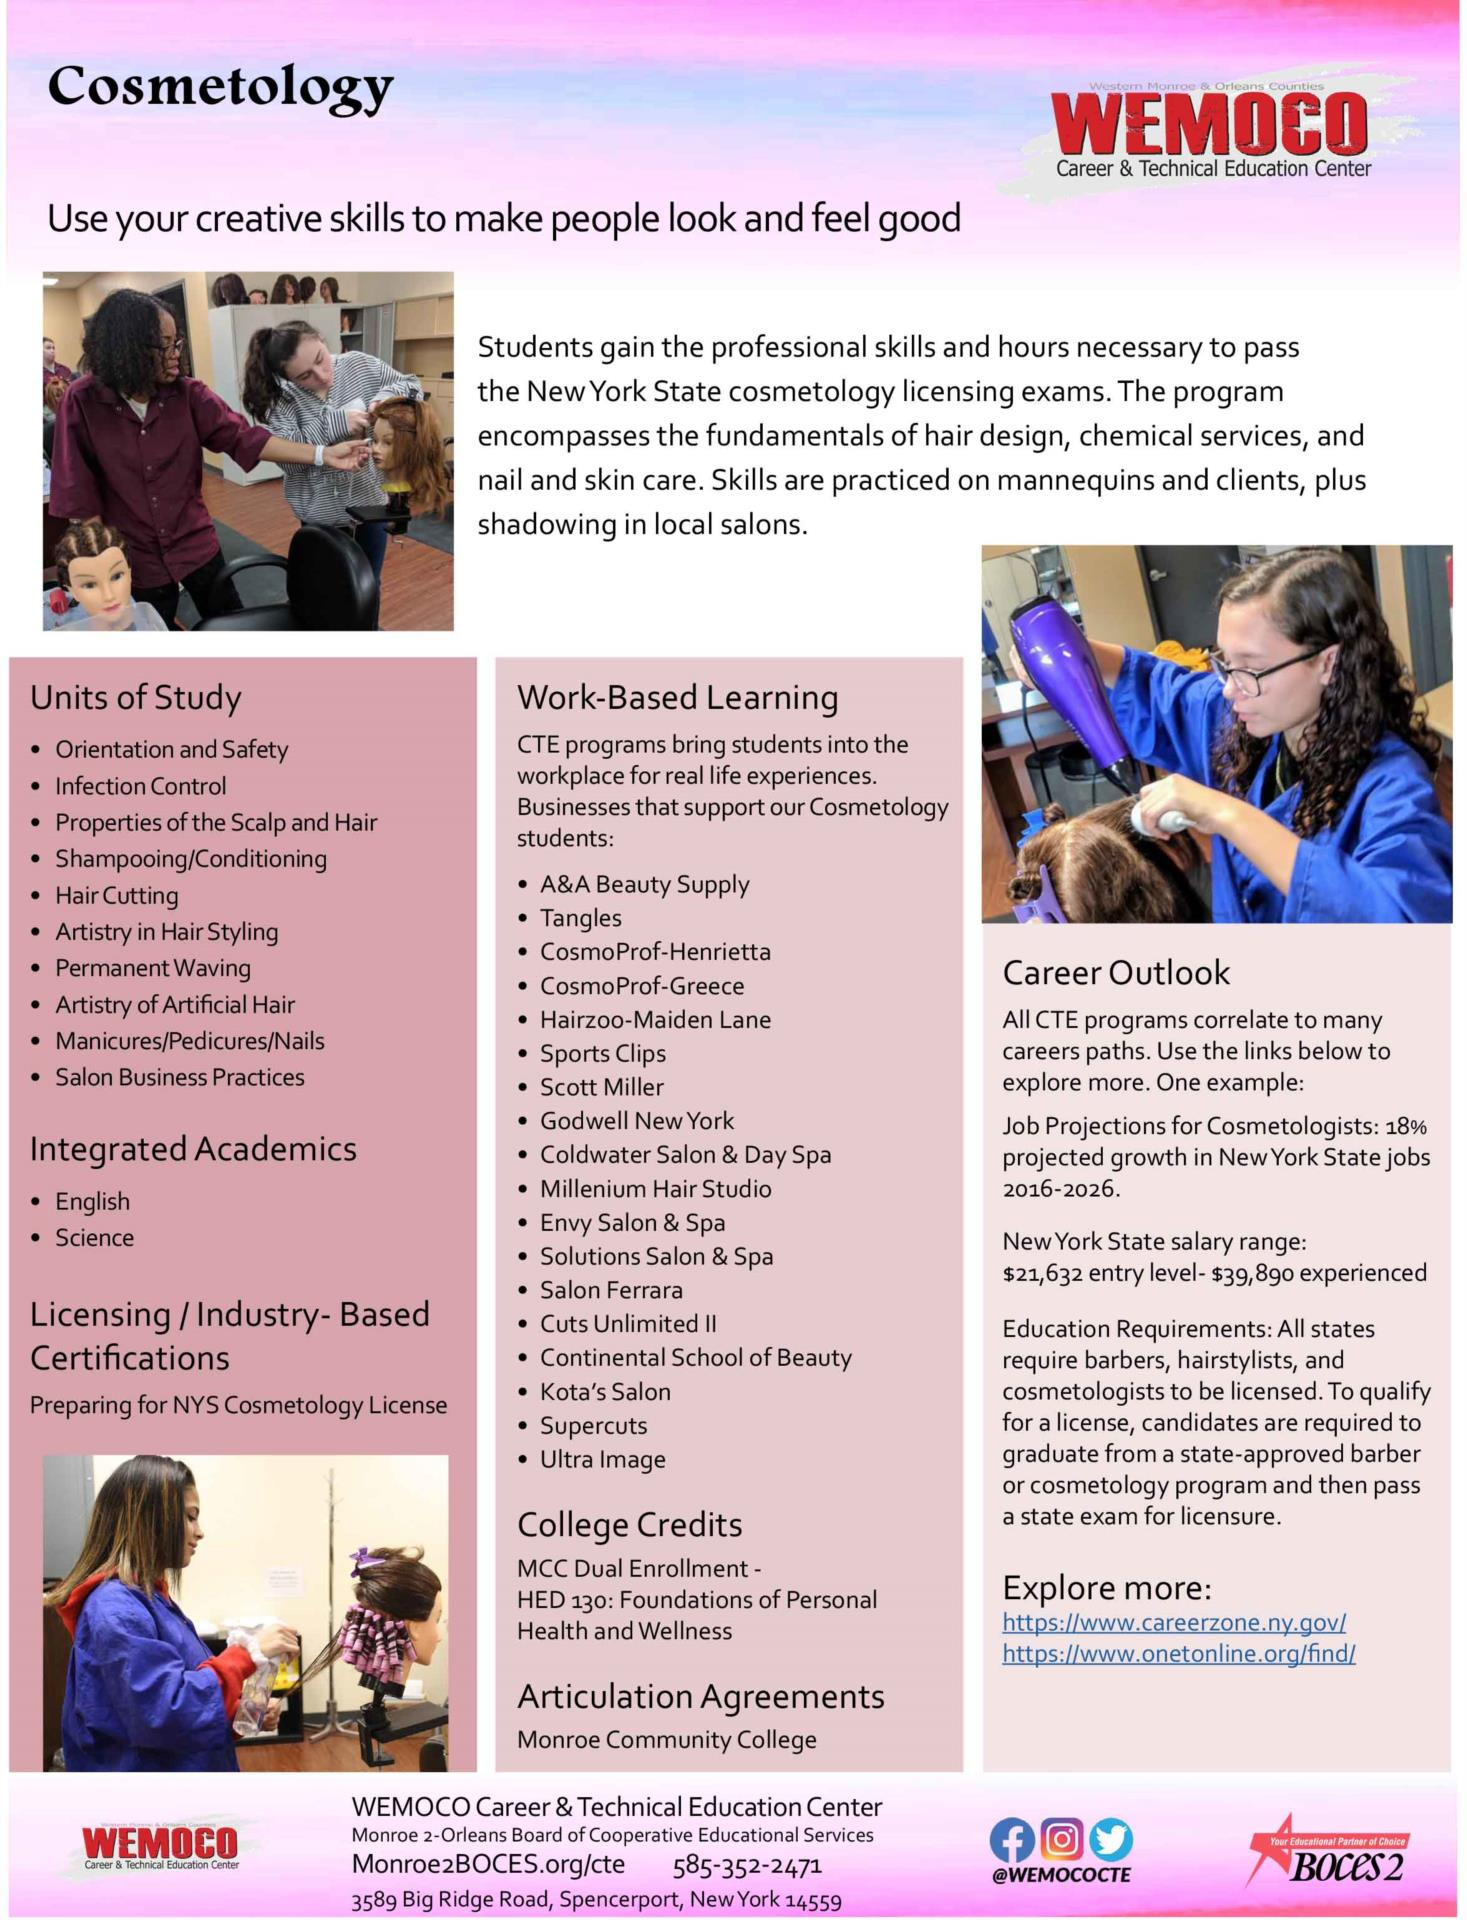 Download a PDF overview of the Cosmetology program information